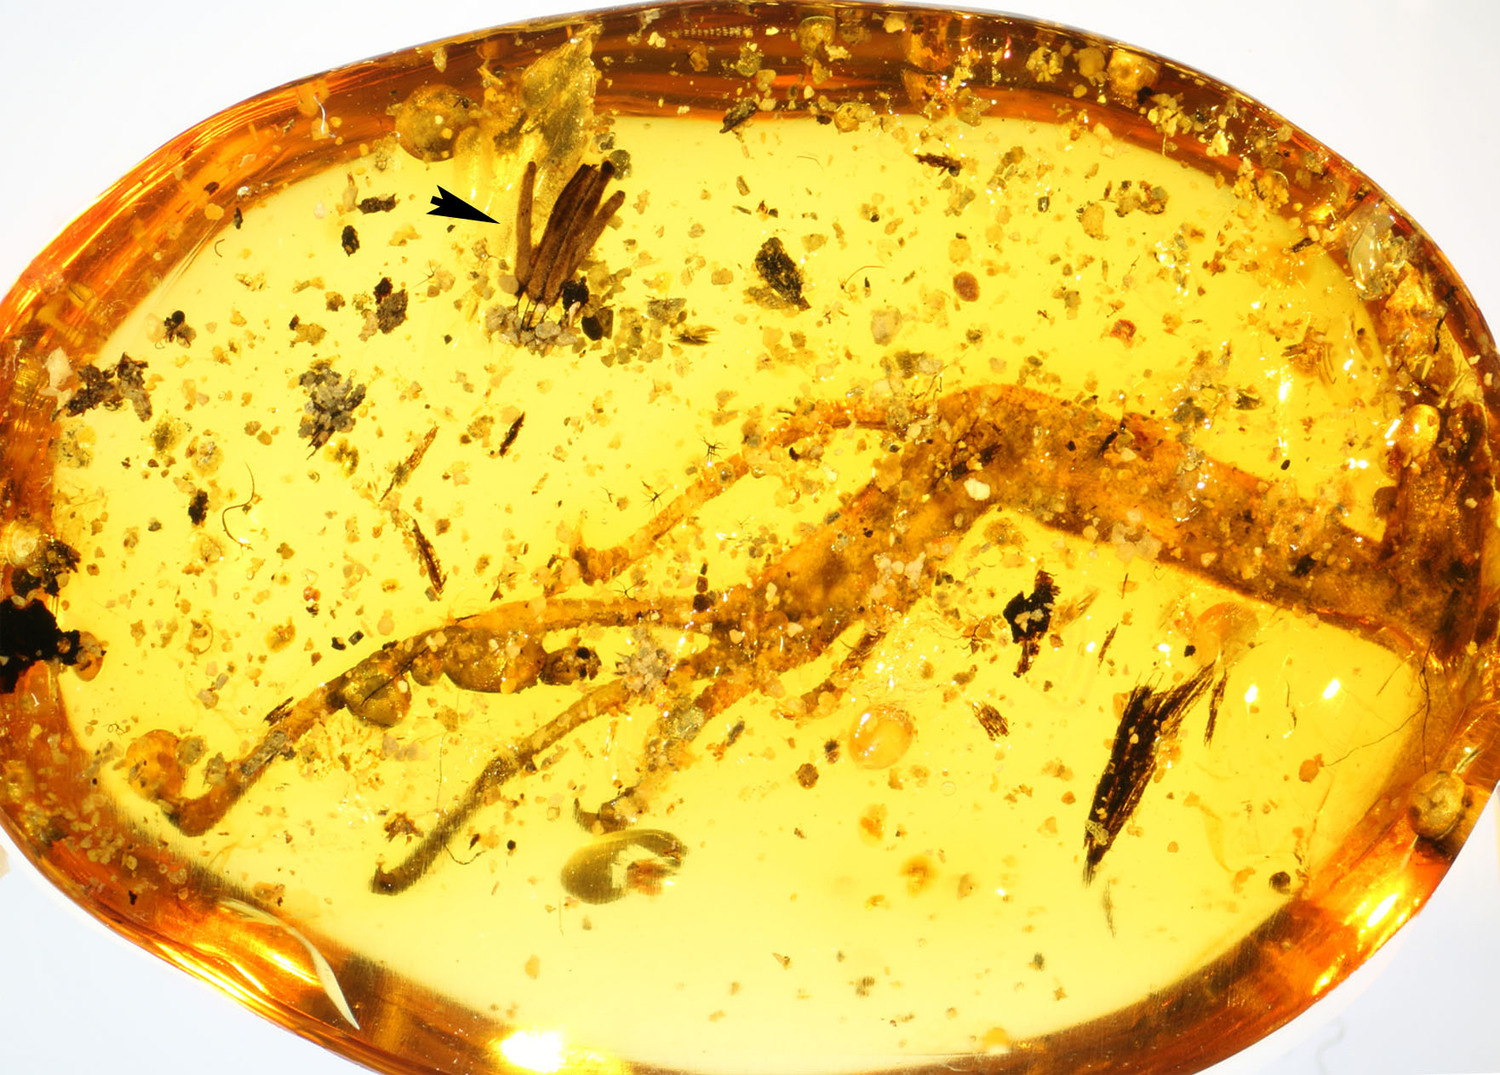 Amber containing lizard leg and fruiting bodies.